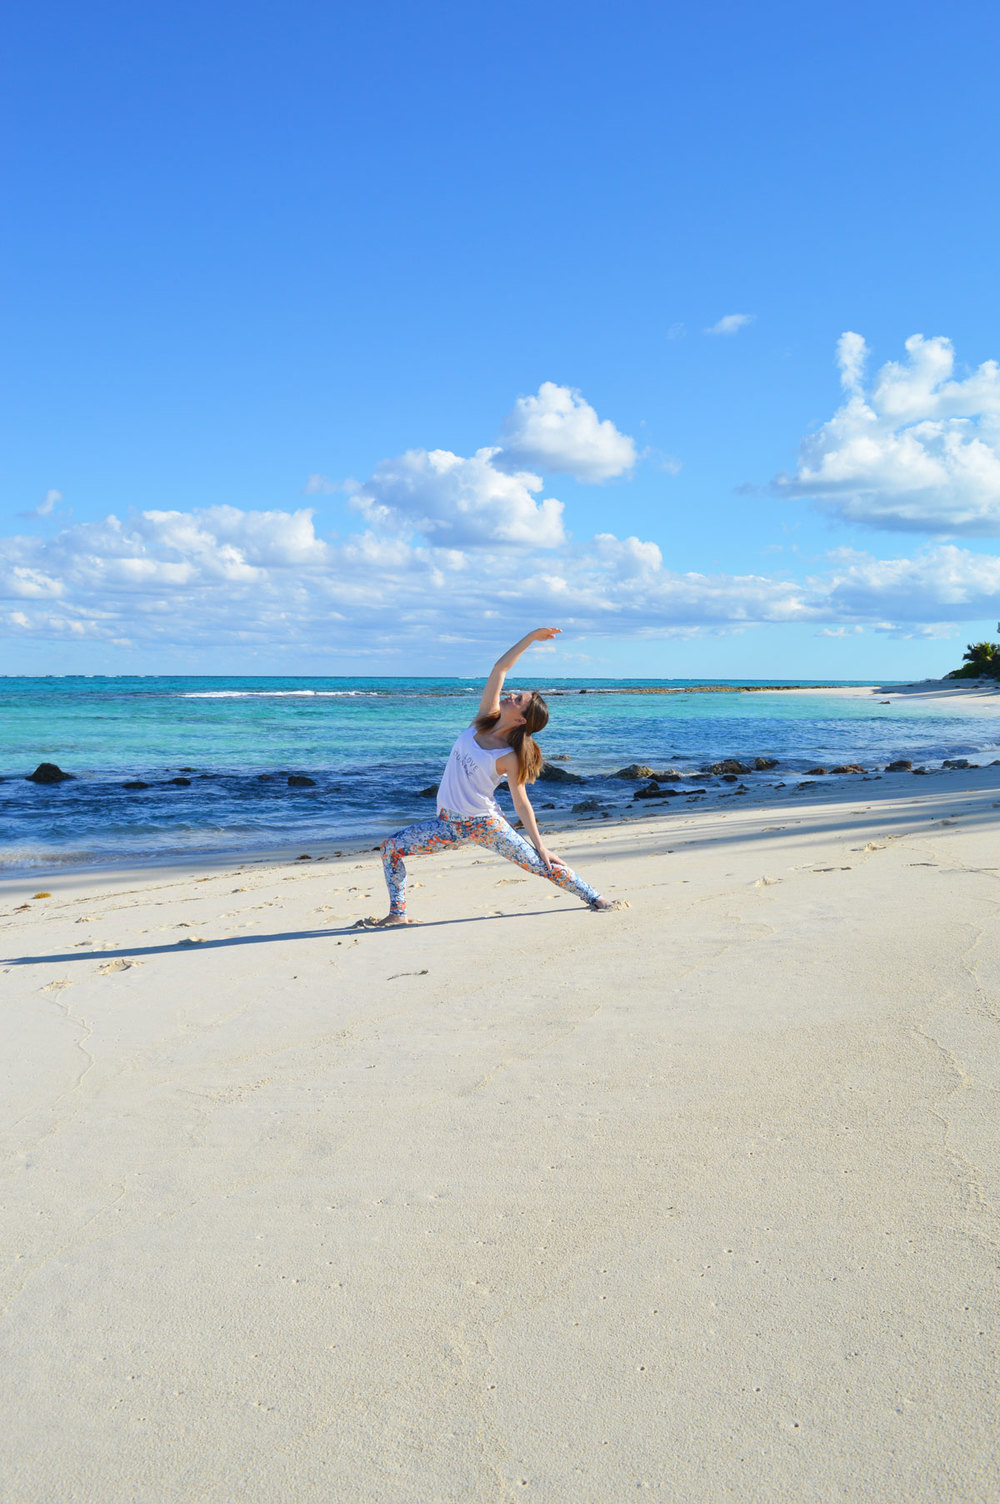 love-beach-nassau-bahamas-jala-clothing-yoga-lifestyle-blogger-2014.jpeg